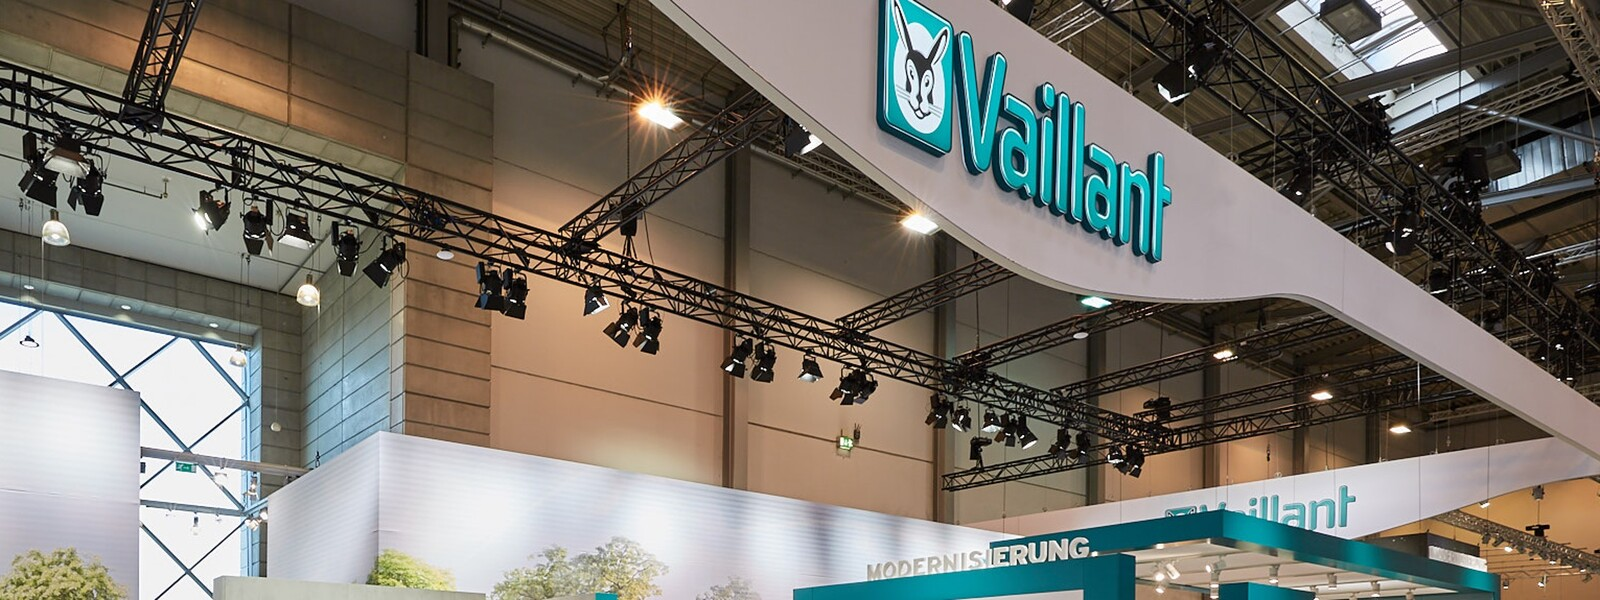 https://www.vaillant-group.com/newsroom/pressemitteilungen/2018/shk-2018/vaillant-shk-2018-messestand-2-1169707-format-24-9@1600@desktop.jpg